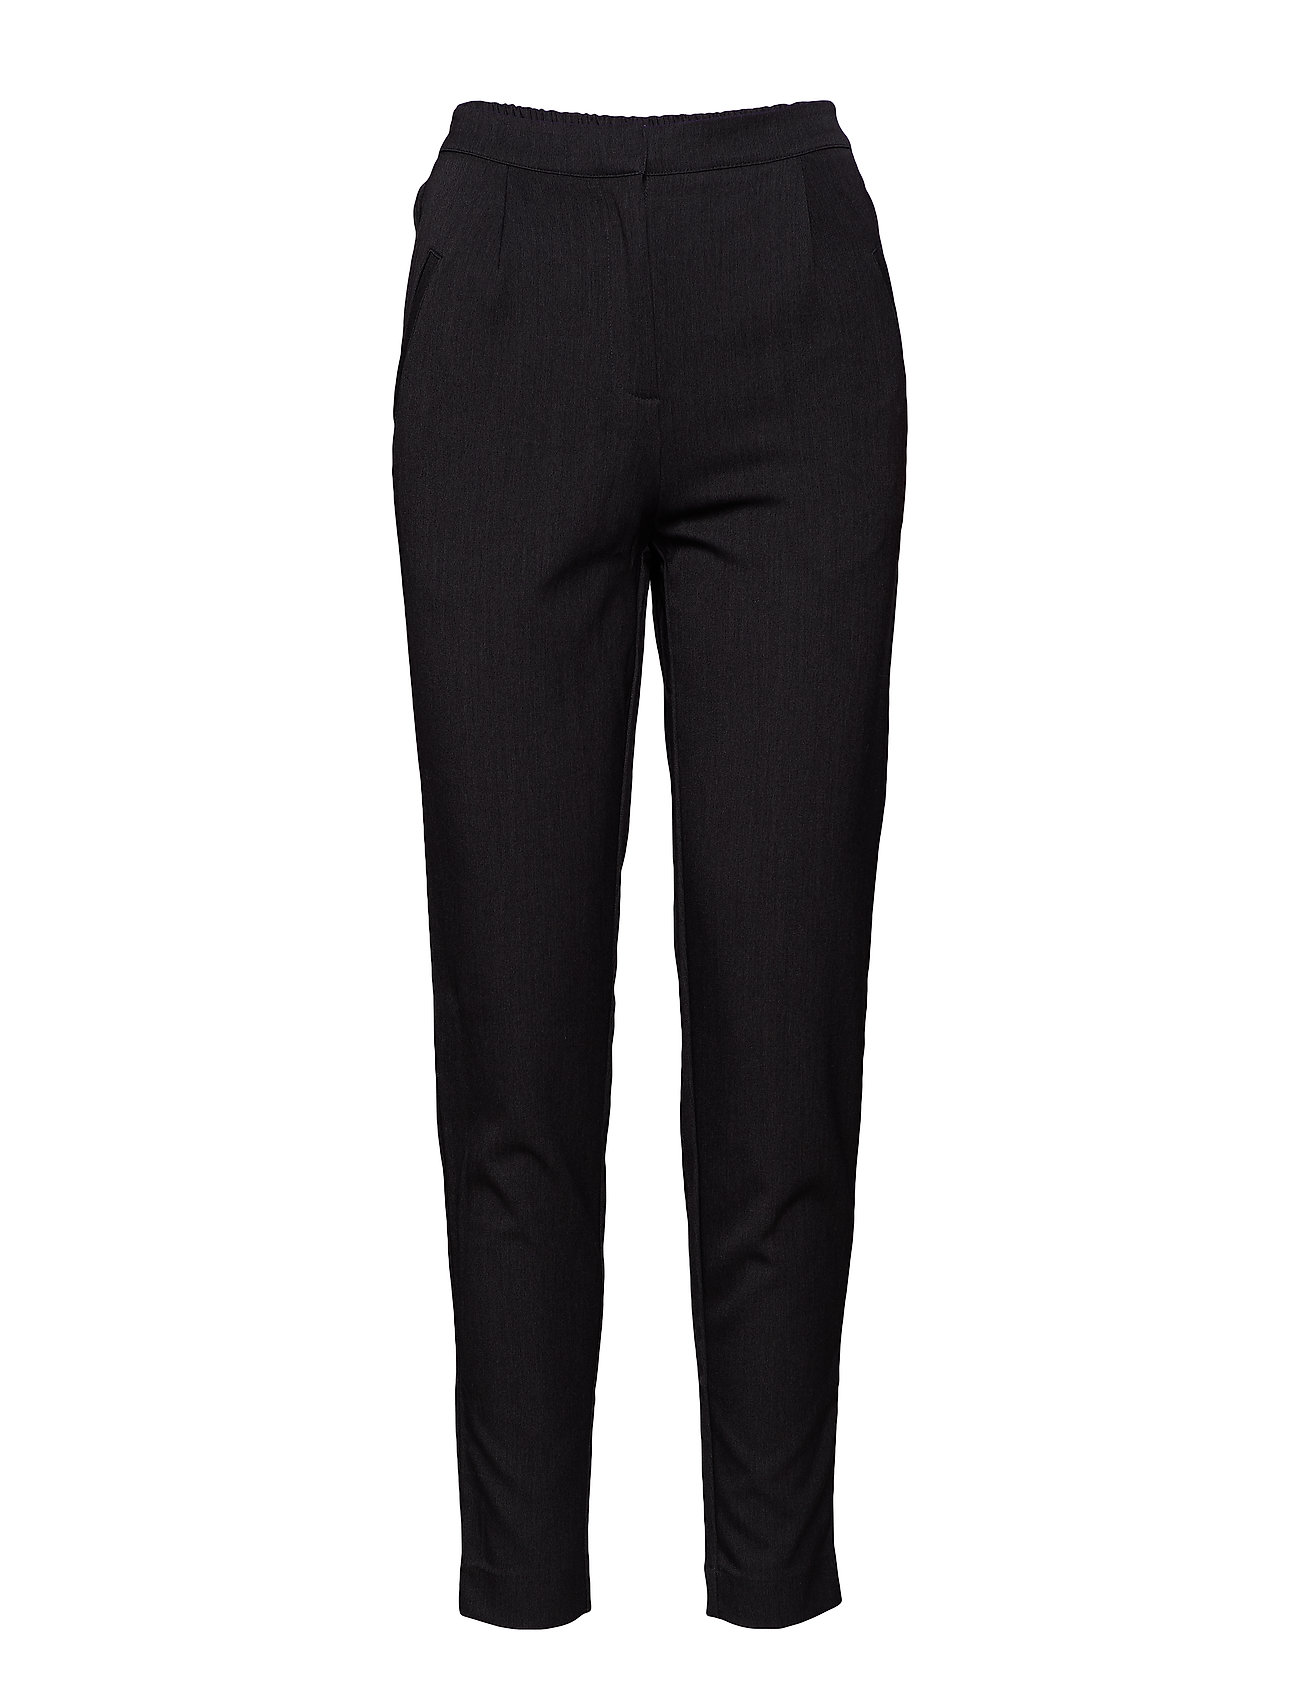 Image of Yasclady Mw Pant Noos Smalle Bukser Skinny Pants Sort YAS (3086723205)